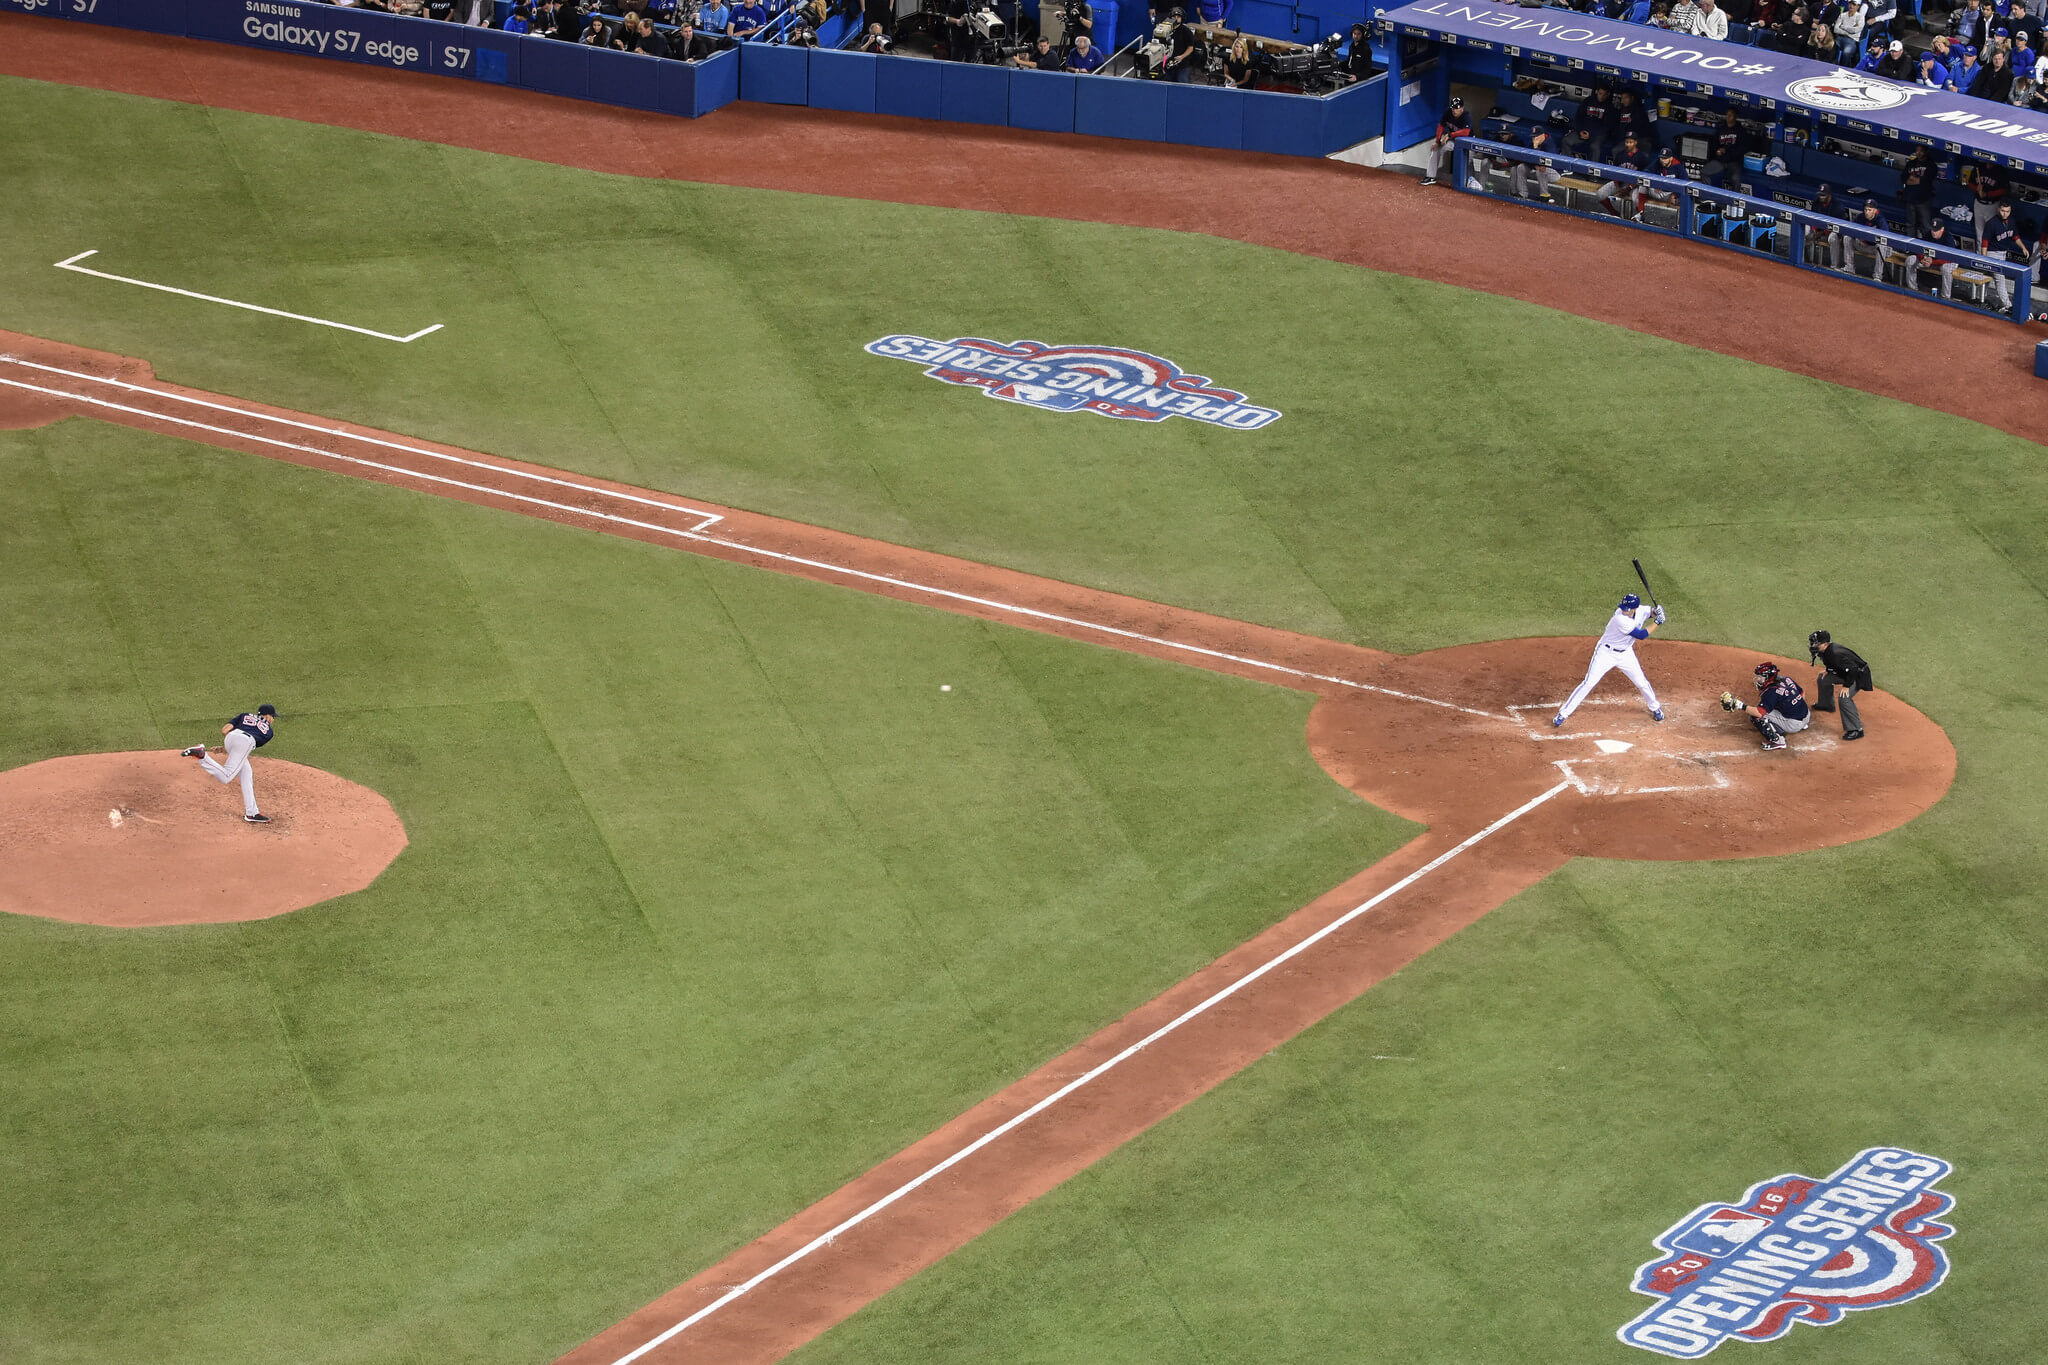 Toronto Blue Jays vs Boston Red Sox Rivalry